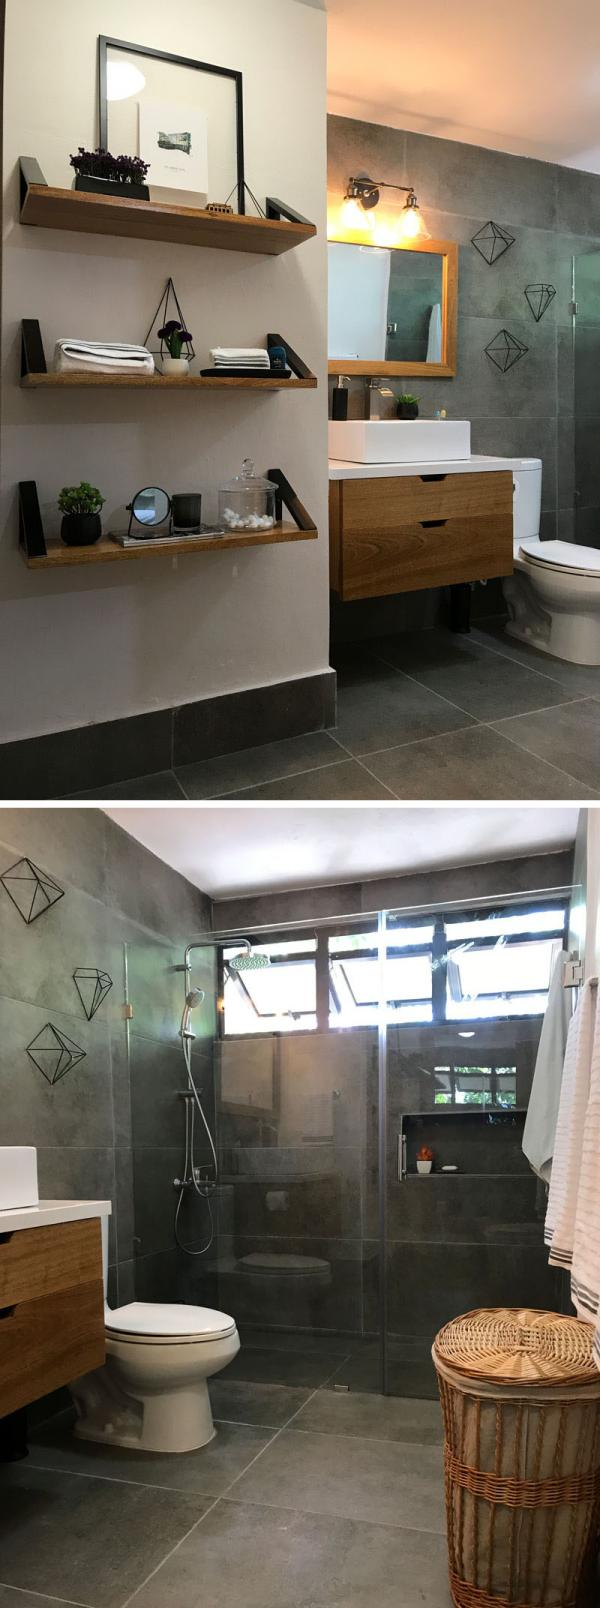 modern bathroom renovation 160318 200 03